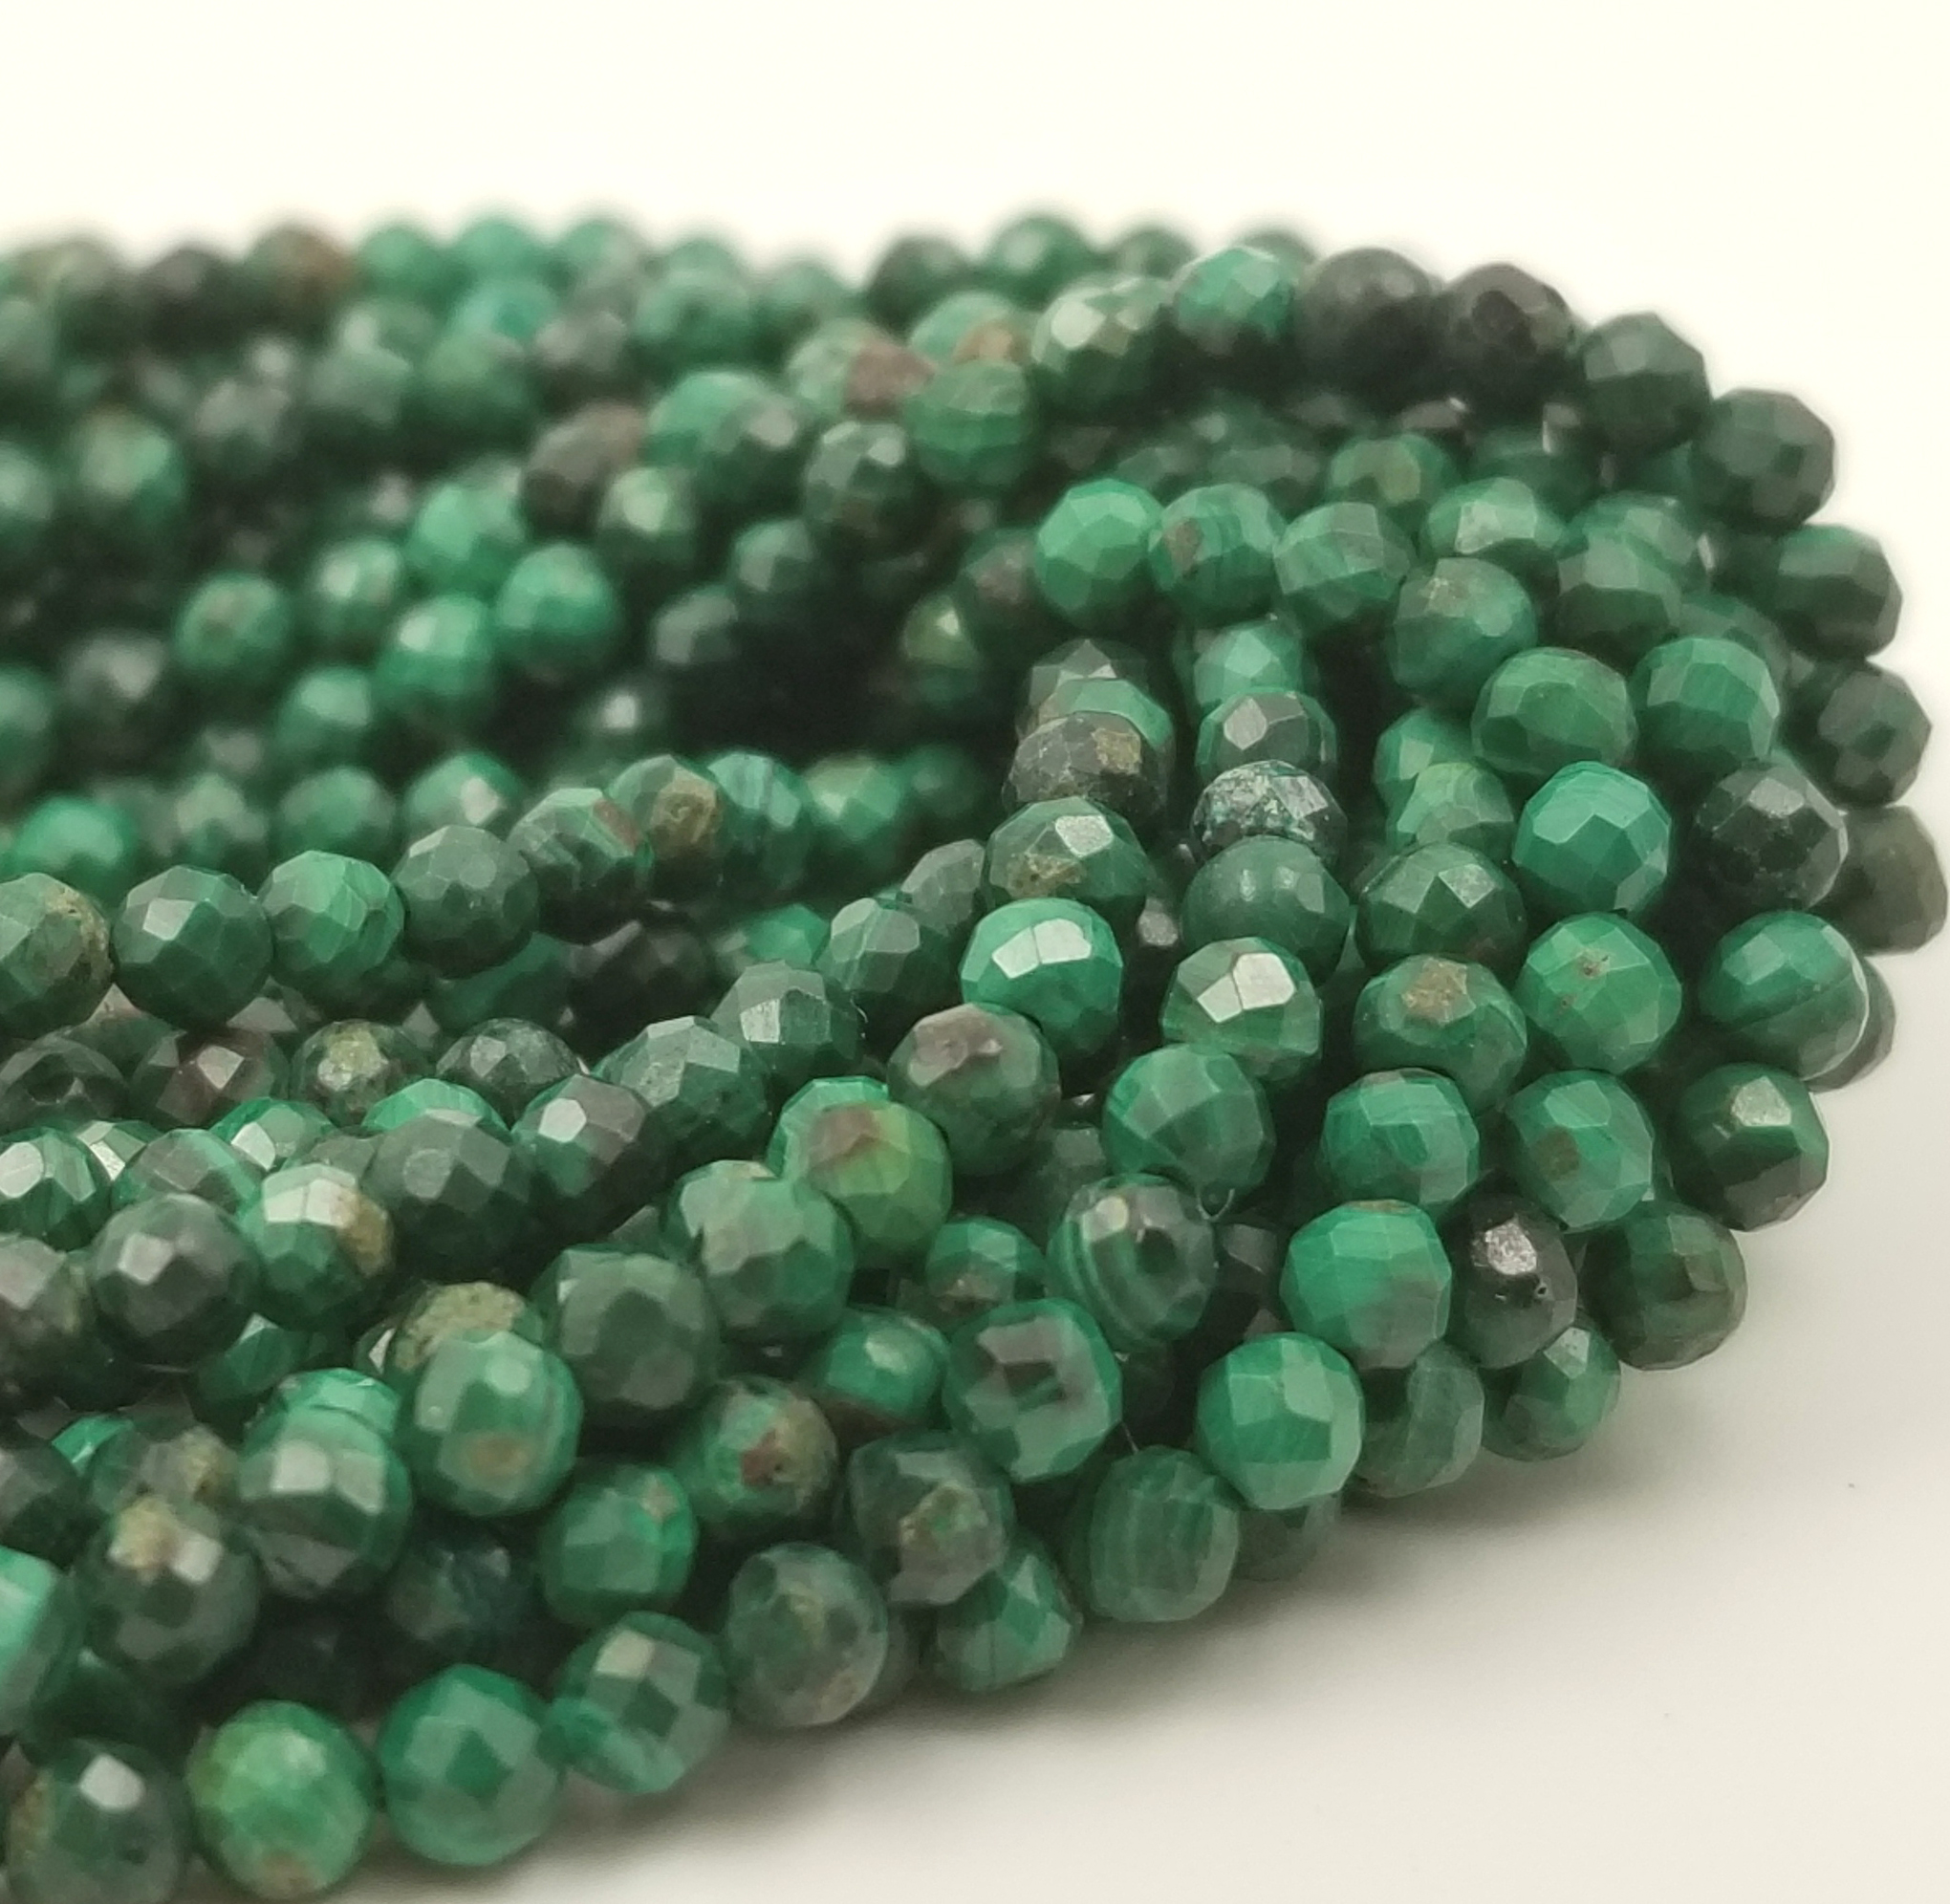 39 cm thread of malachite round beads in 468 mm natural stone